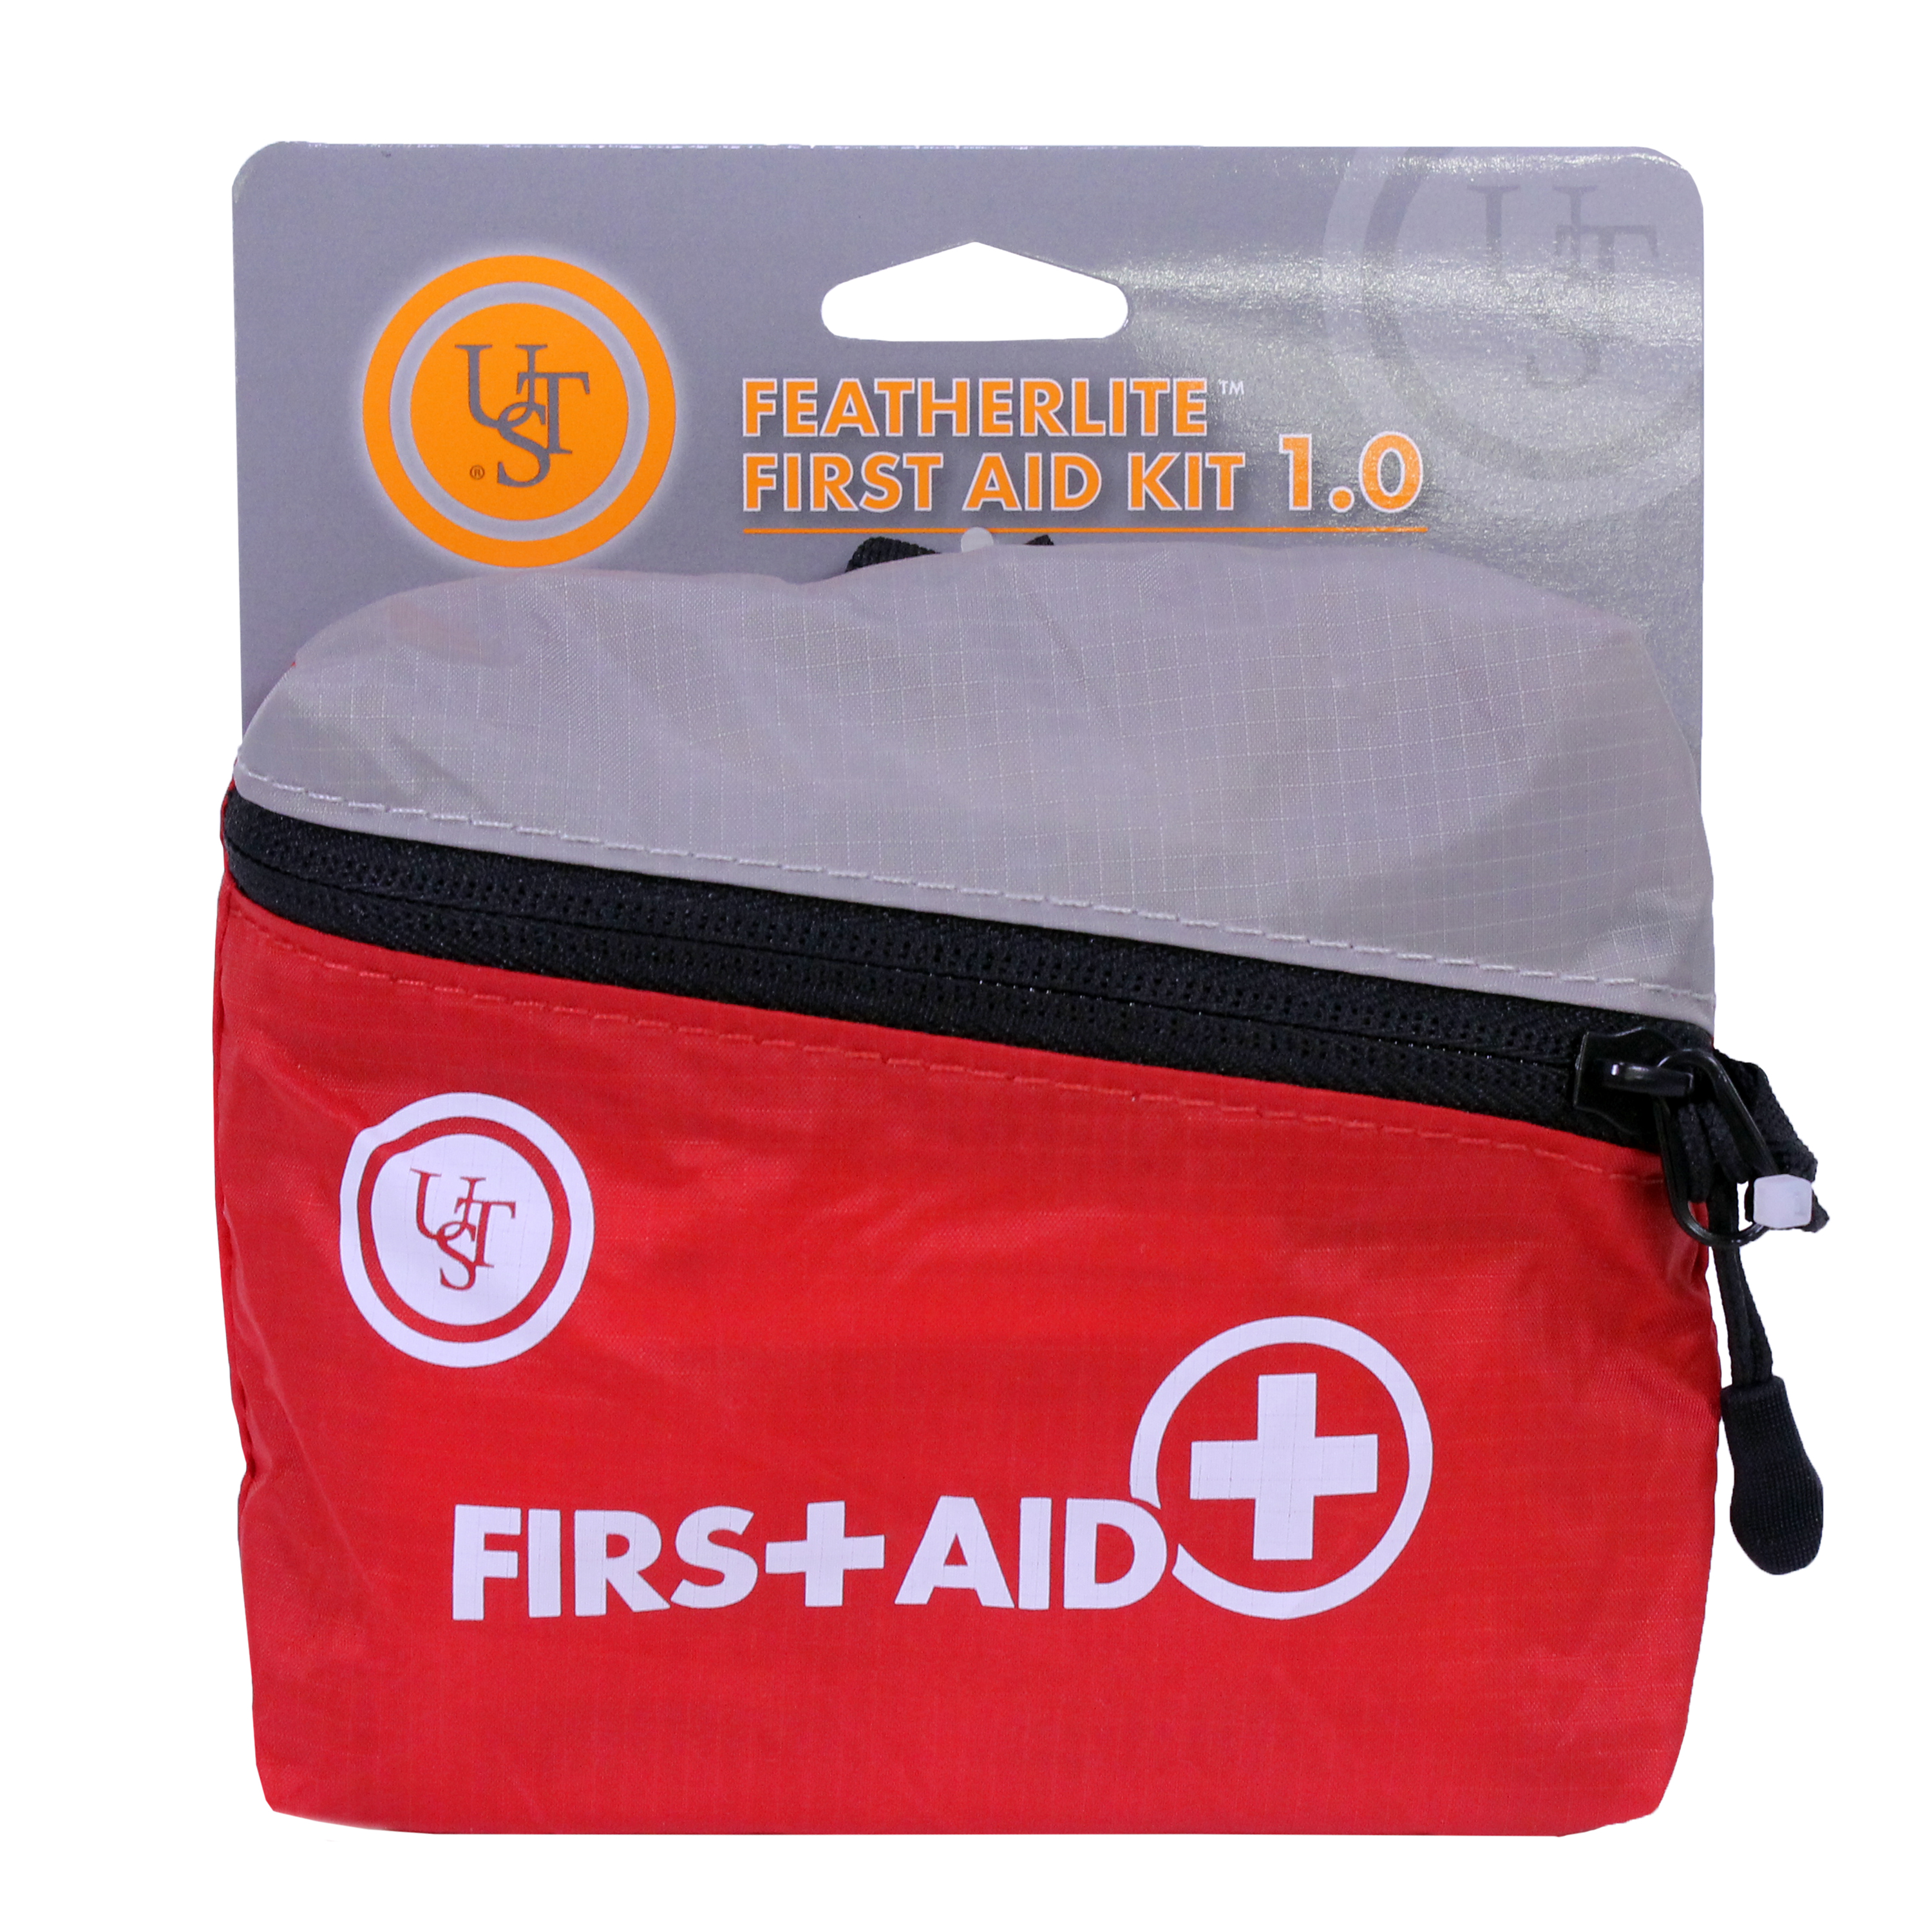 FeatherLite First Aid Kit 1.0, Red